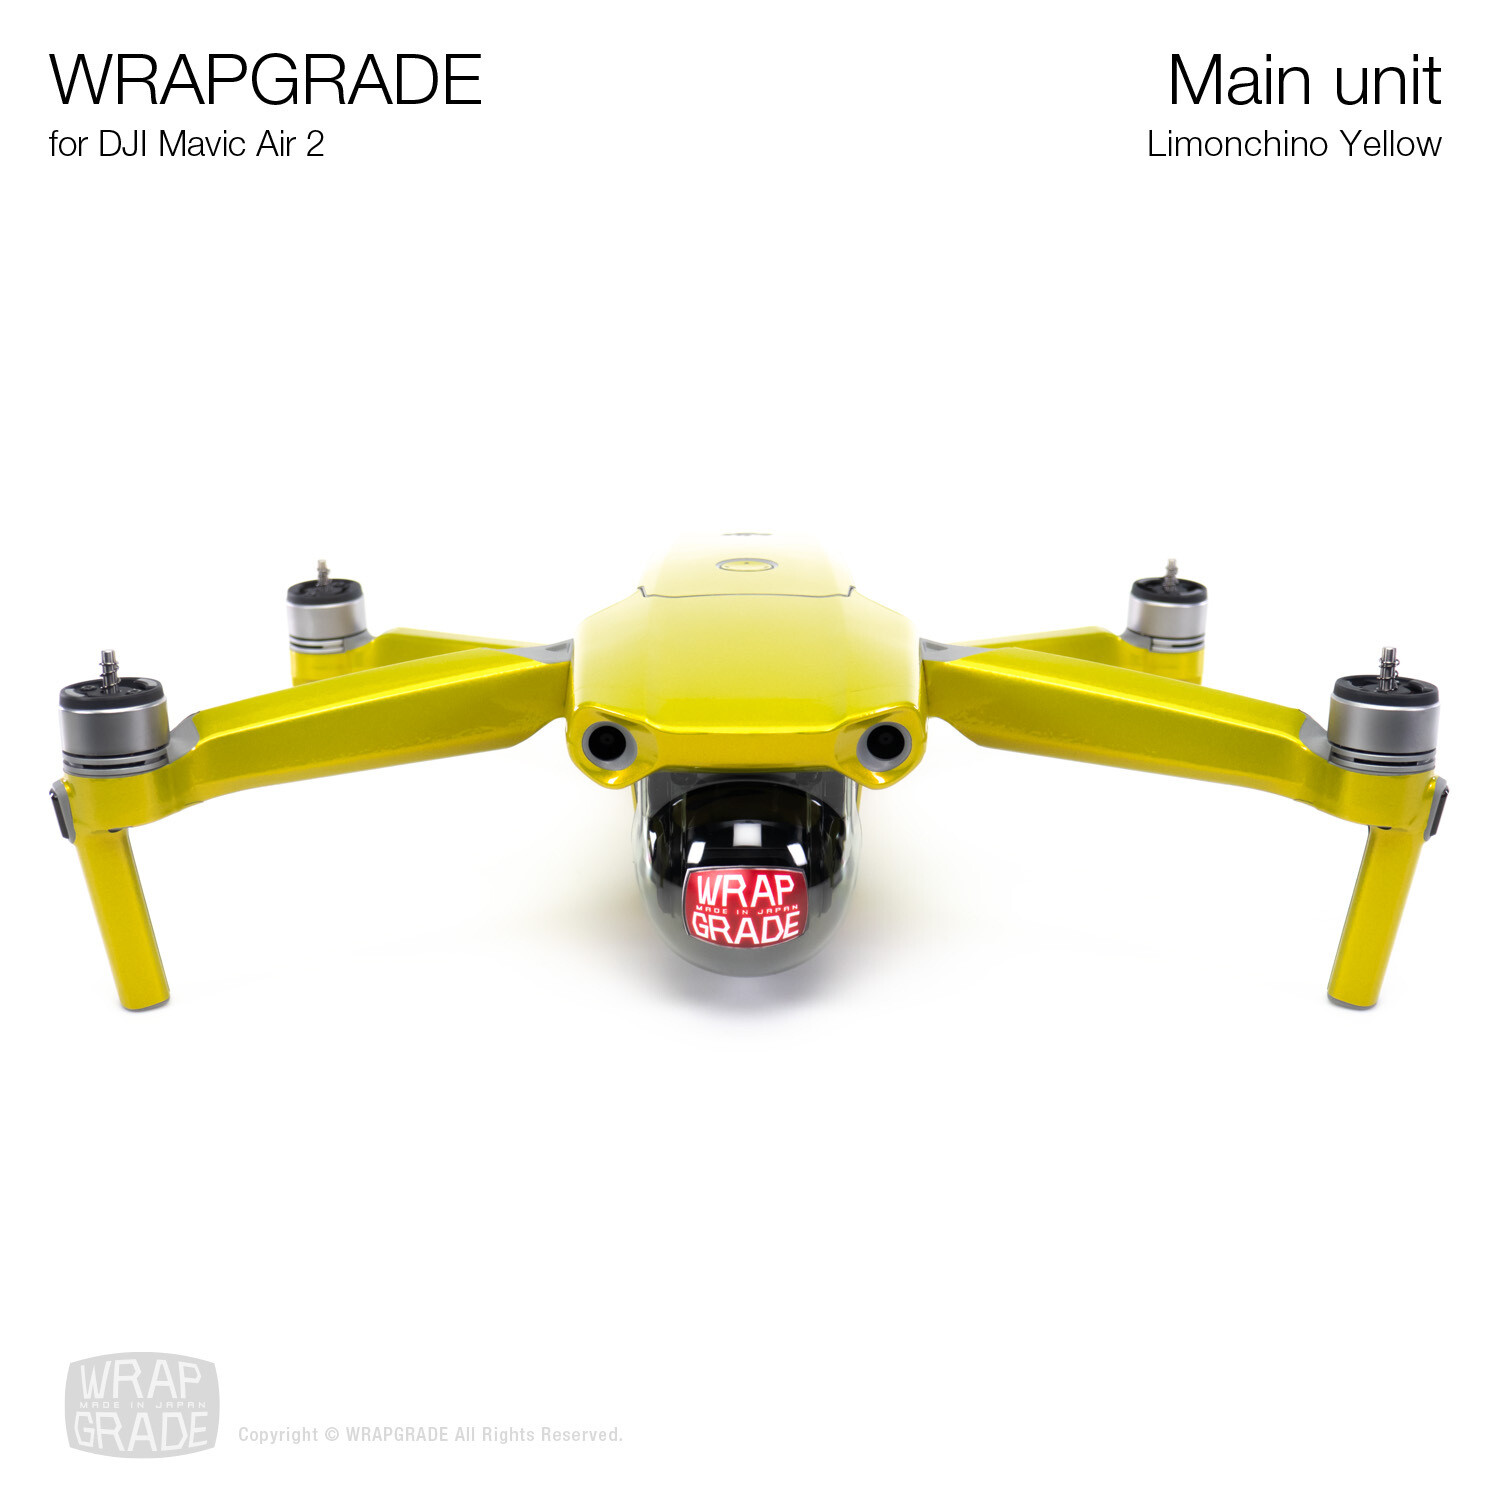 Wrapgrade for DJI Mavic Air 2 | Main Unit​ (LIMONCINO YELLOW​)